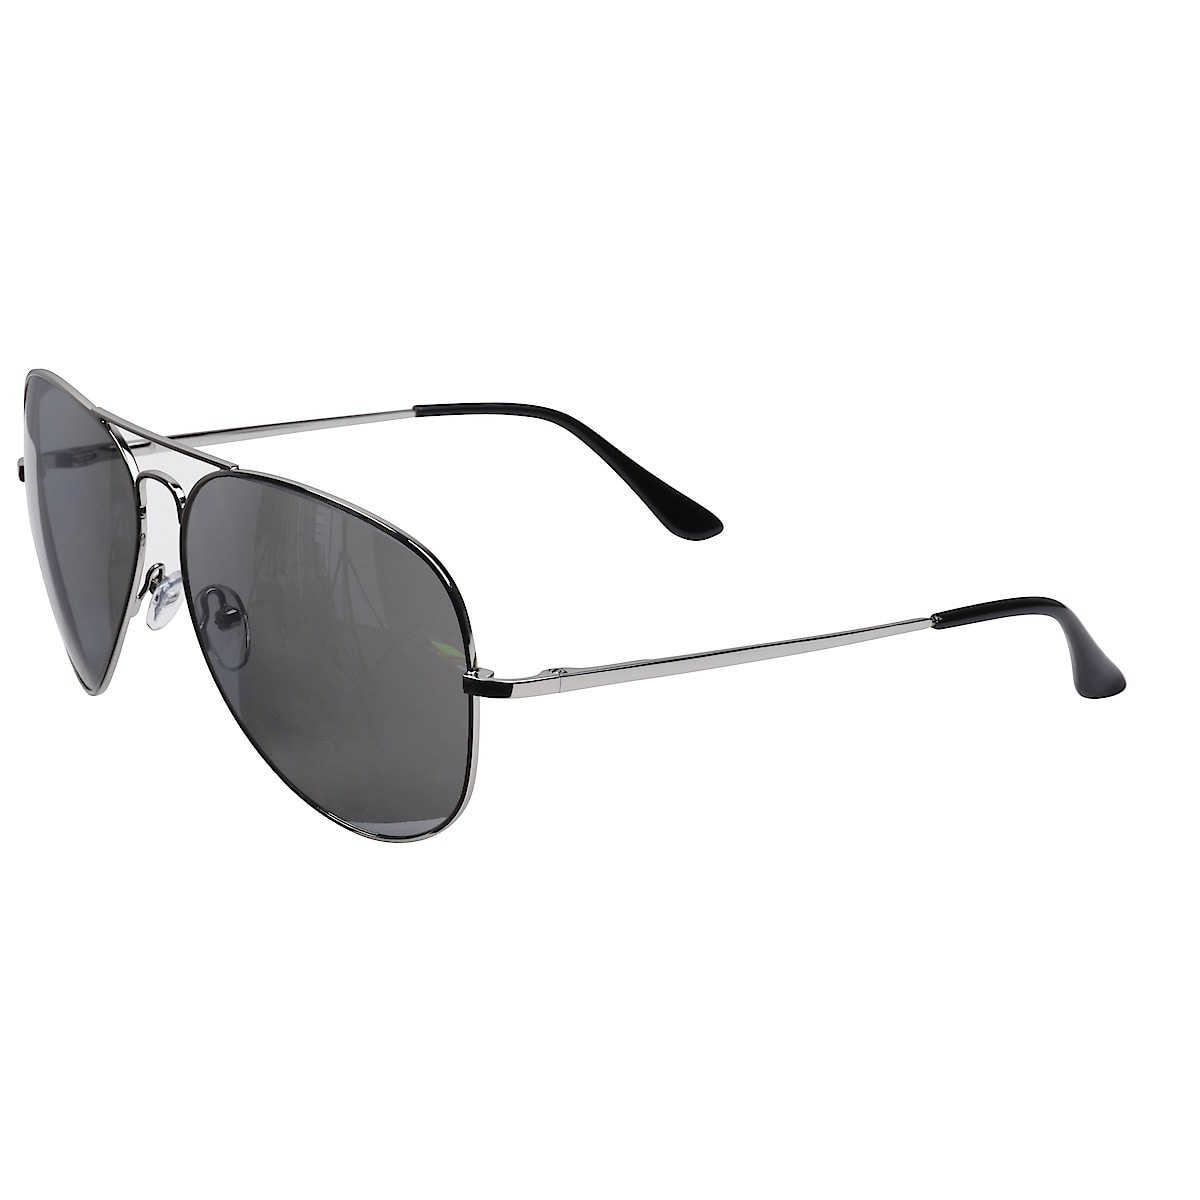 Solbrille, metall